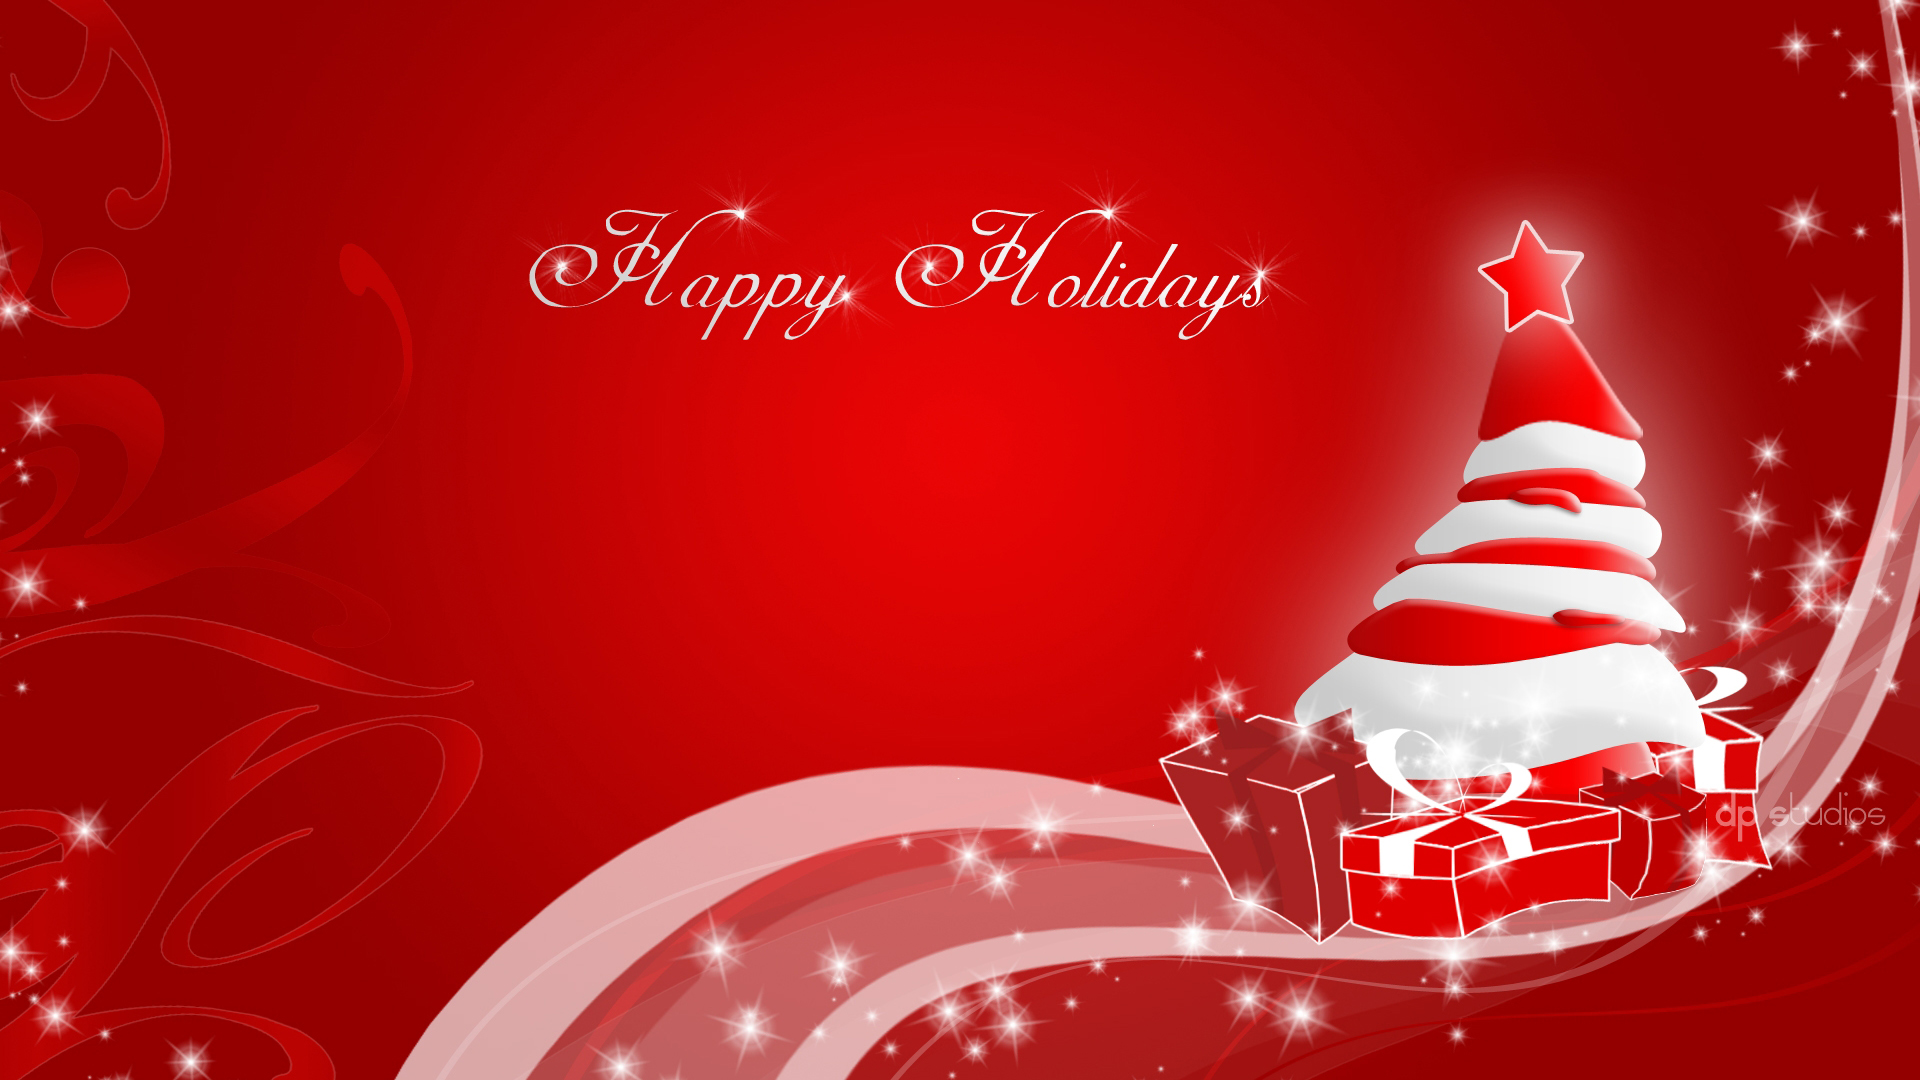 Happy Holidays Wide Screen Wallpaper 1920x1080